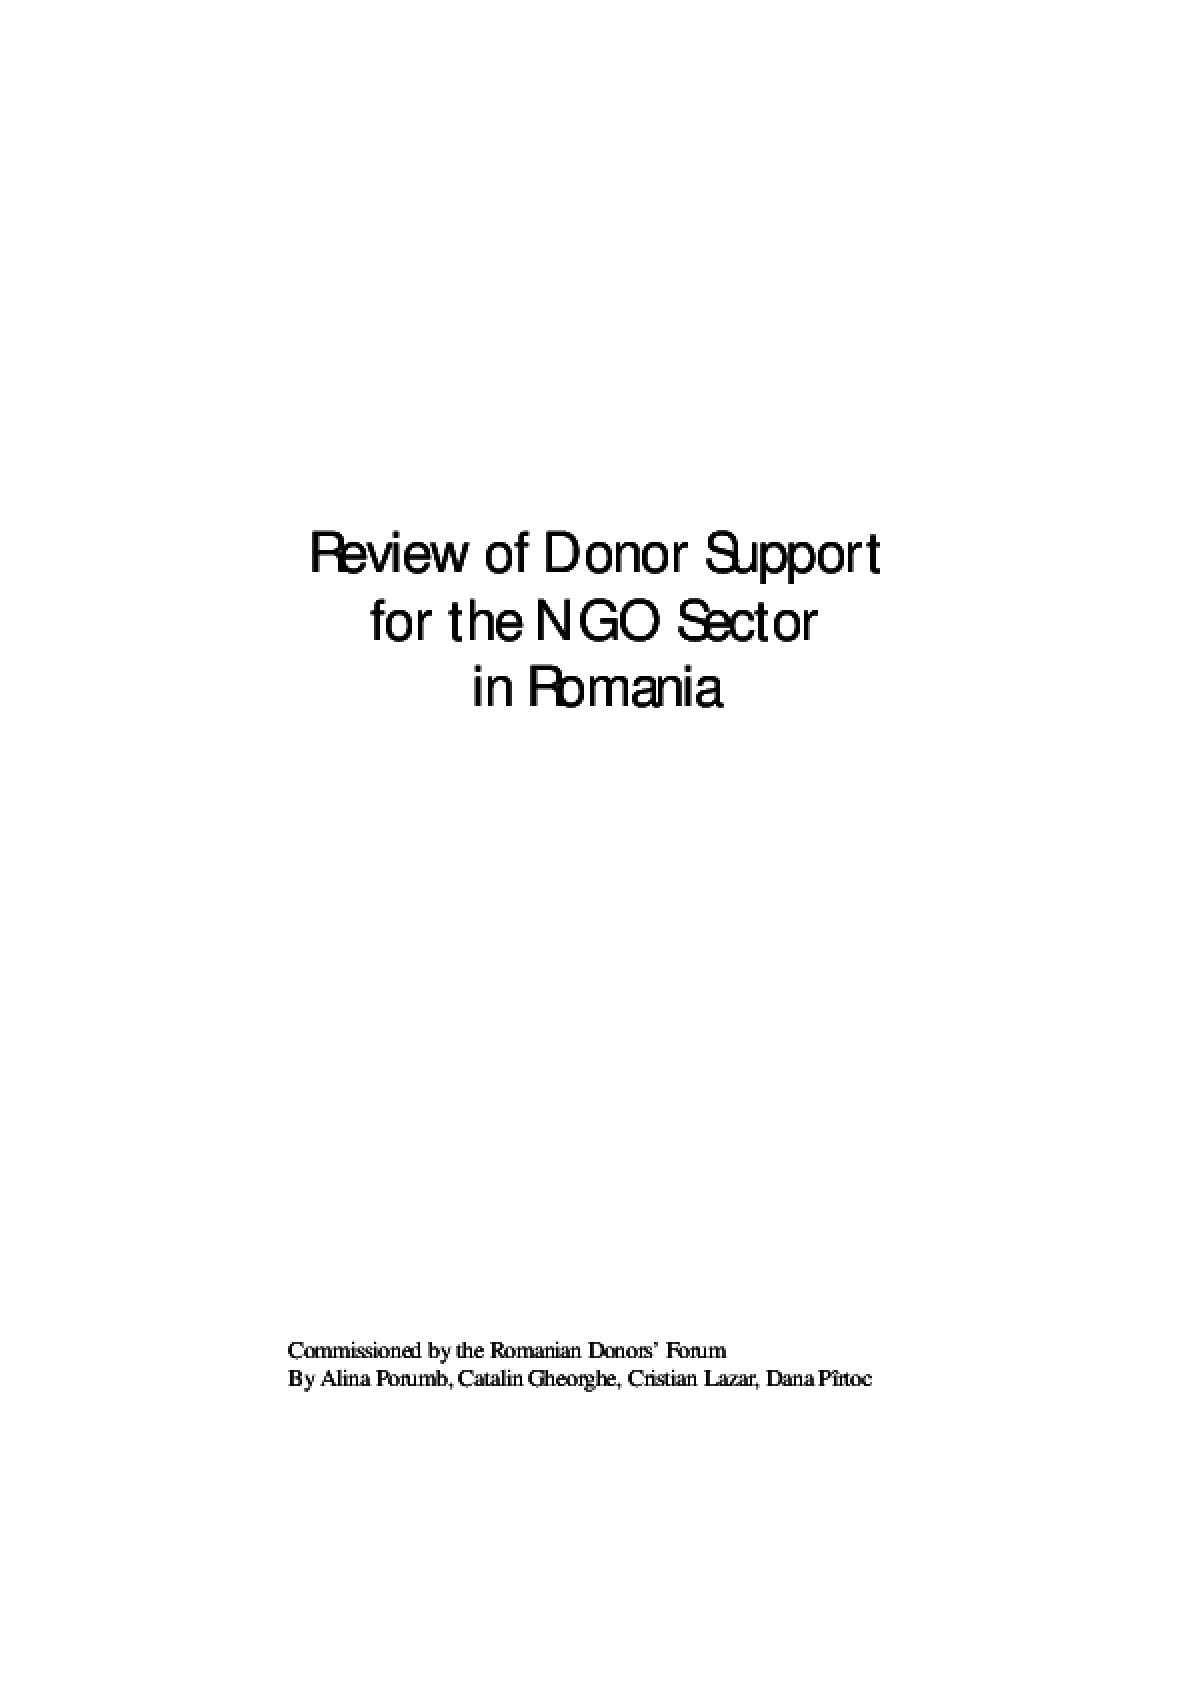 Review of Donor Support for the NGO Sector in Romania